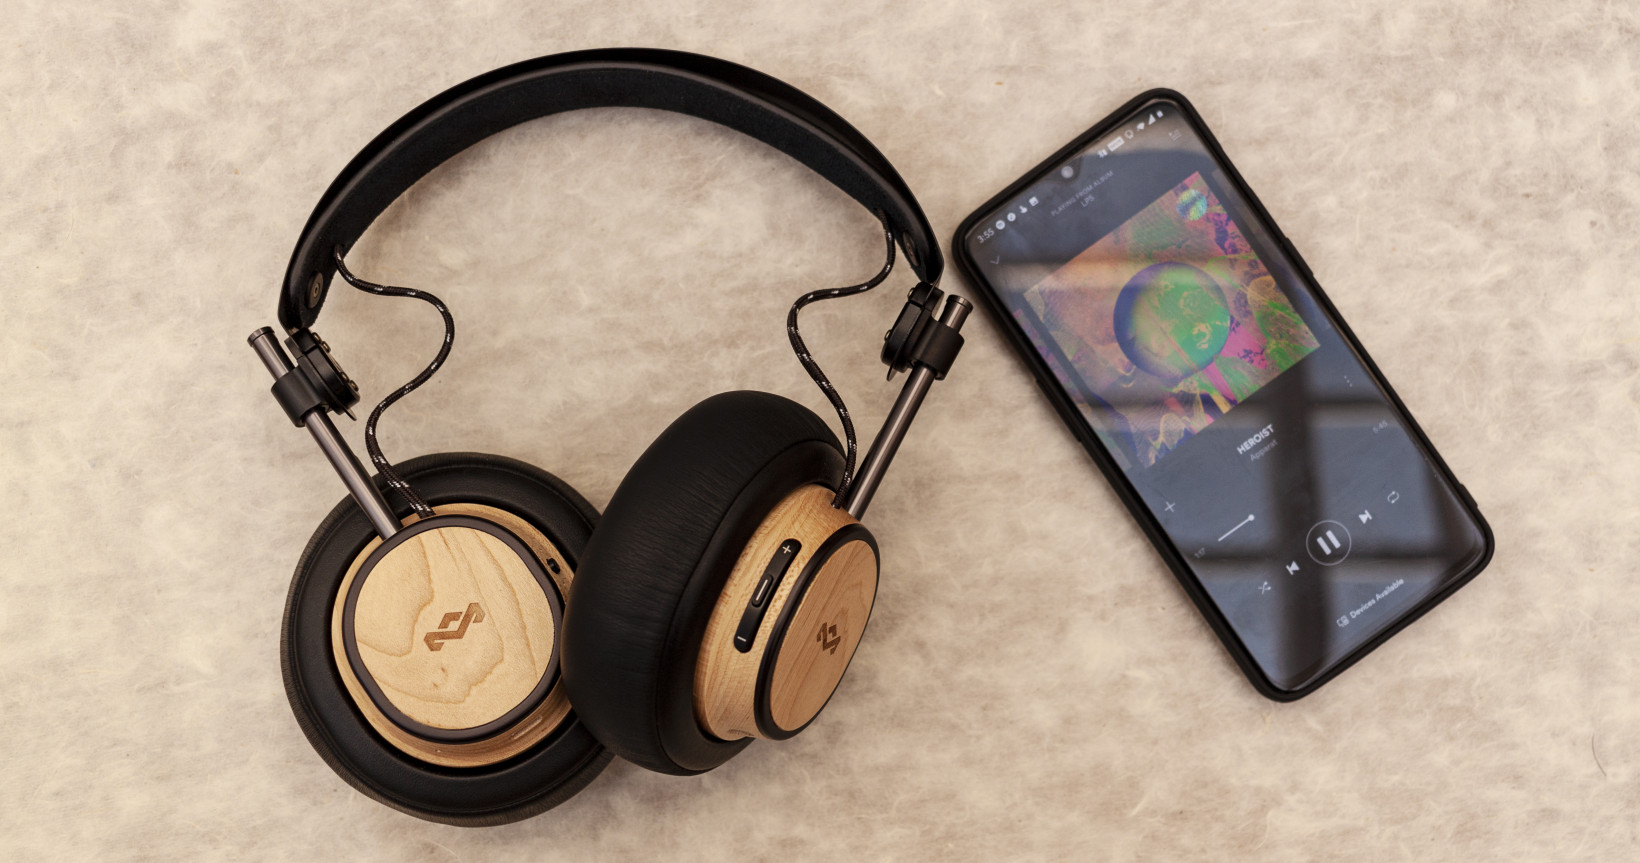 House of Marley's $200 headphones are as comfortable as they are stylish